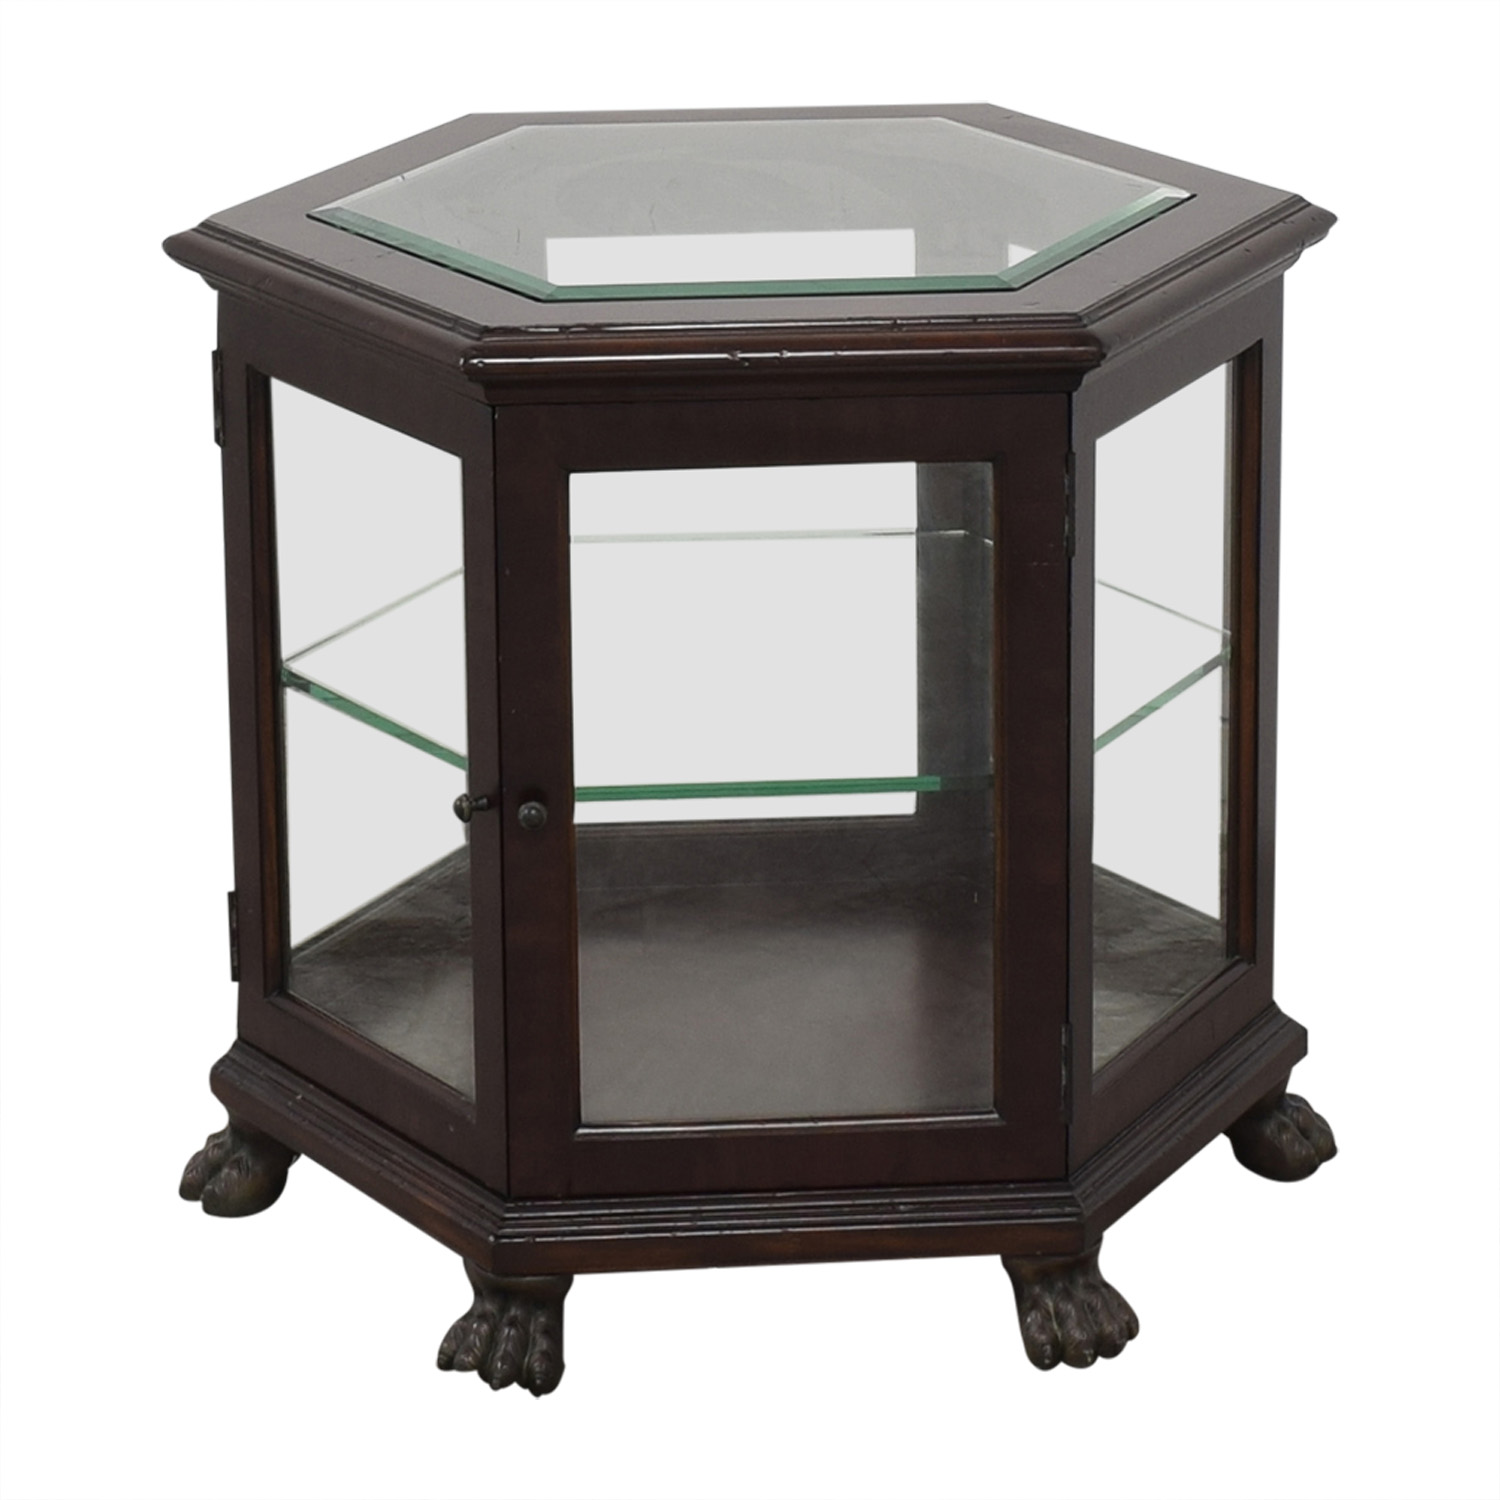 buy Thomasville Thomasville Hexagon End Table online